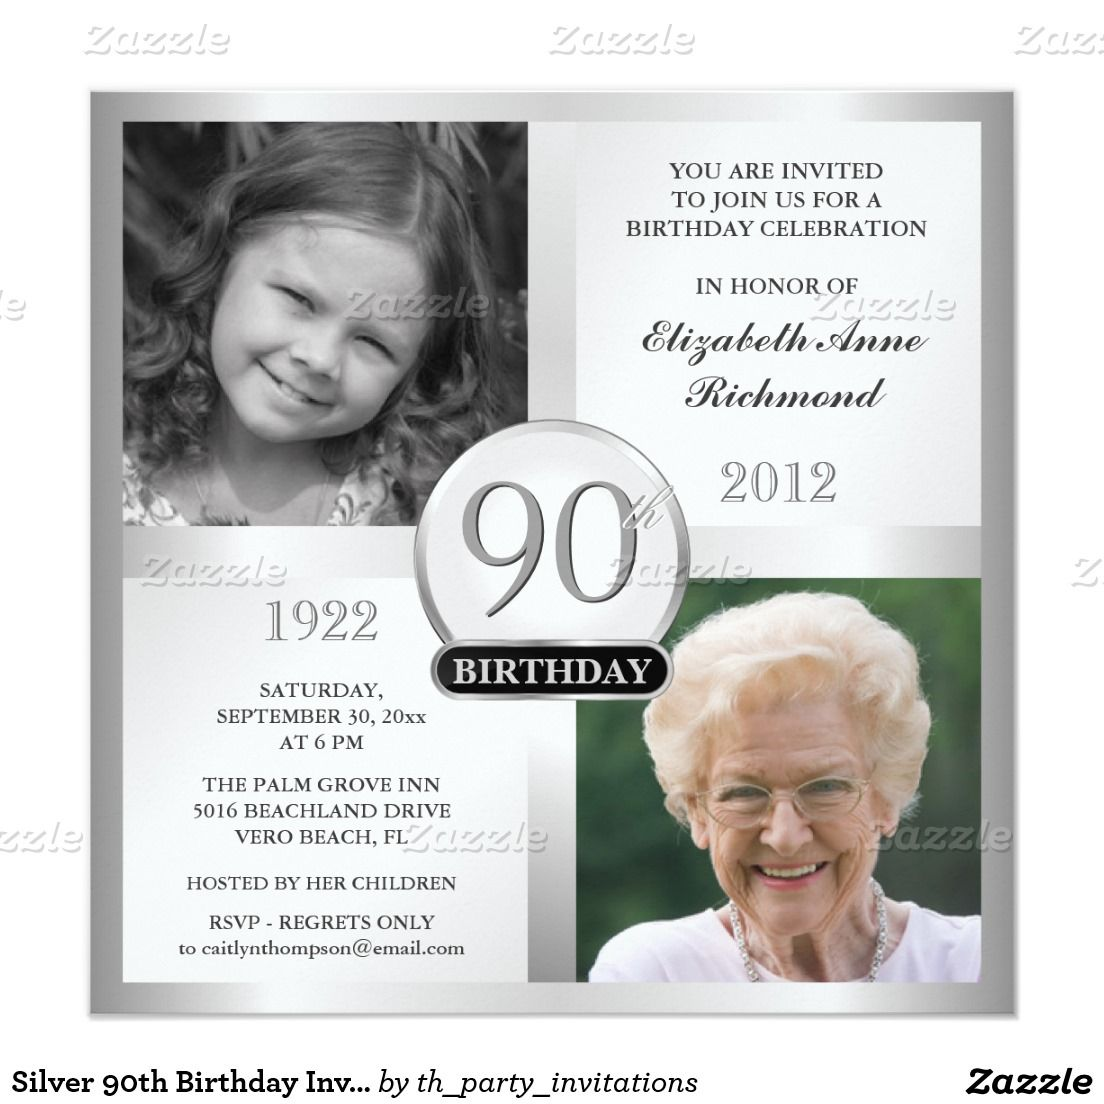 Silver 90th Birthday Invitations Then & Now Photos | PARTY IDEAS ...